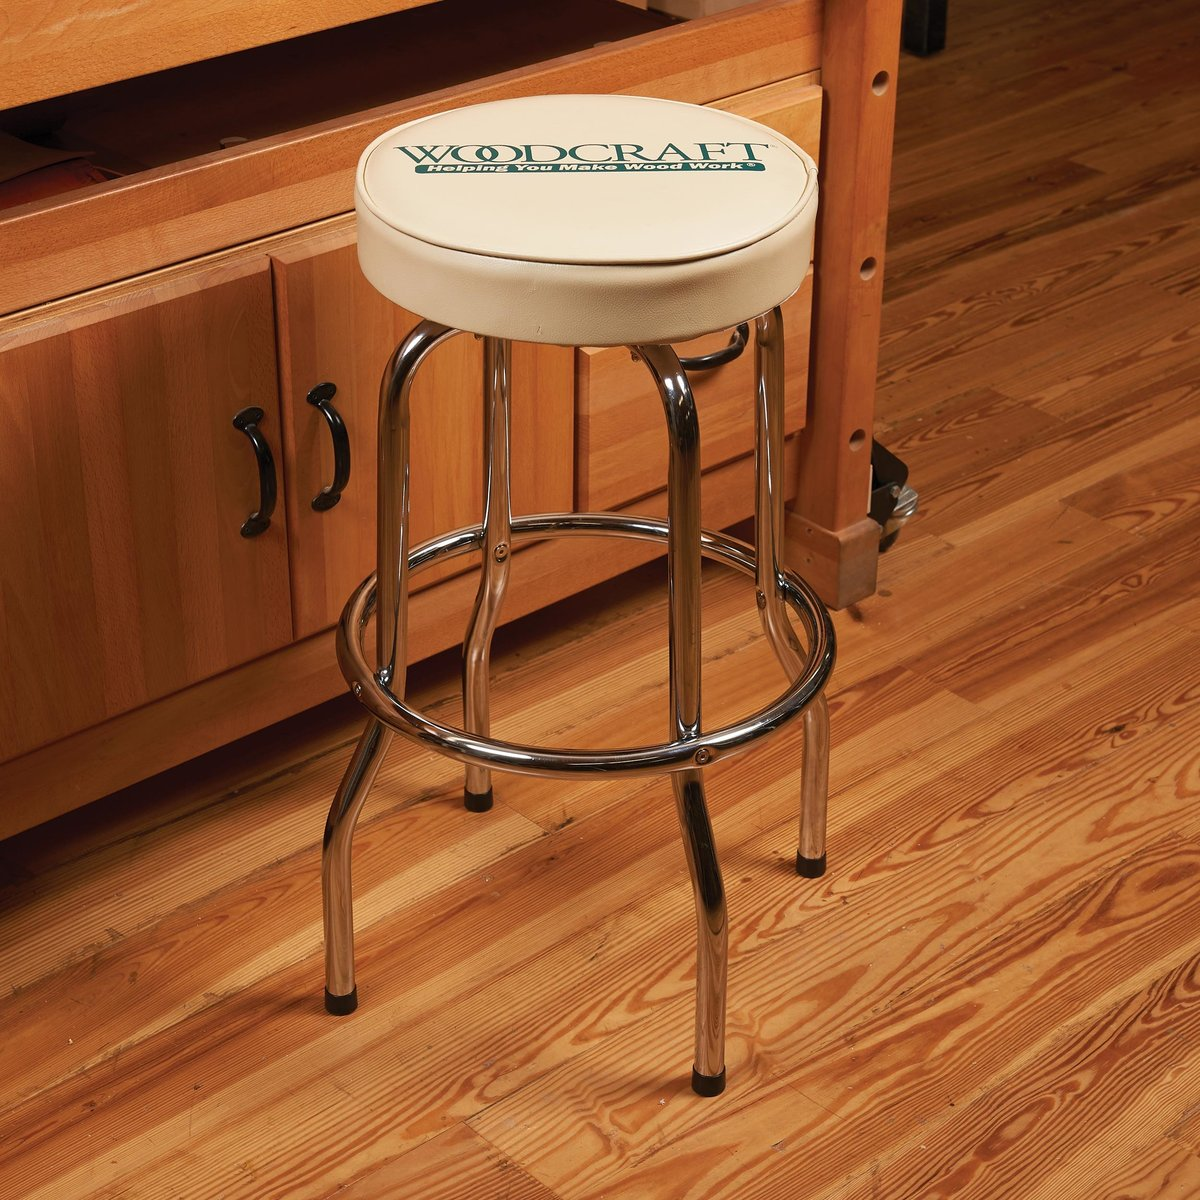 Groovy Woodcraft Woodcraft Shop Stool Andrewgaddart Wooden Chair Designs For Living Room Andrewgaddartcom